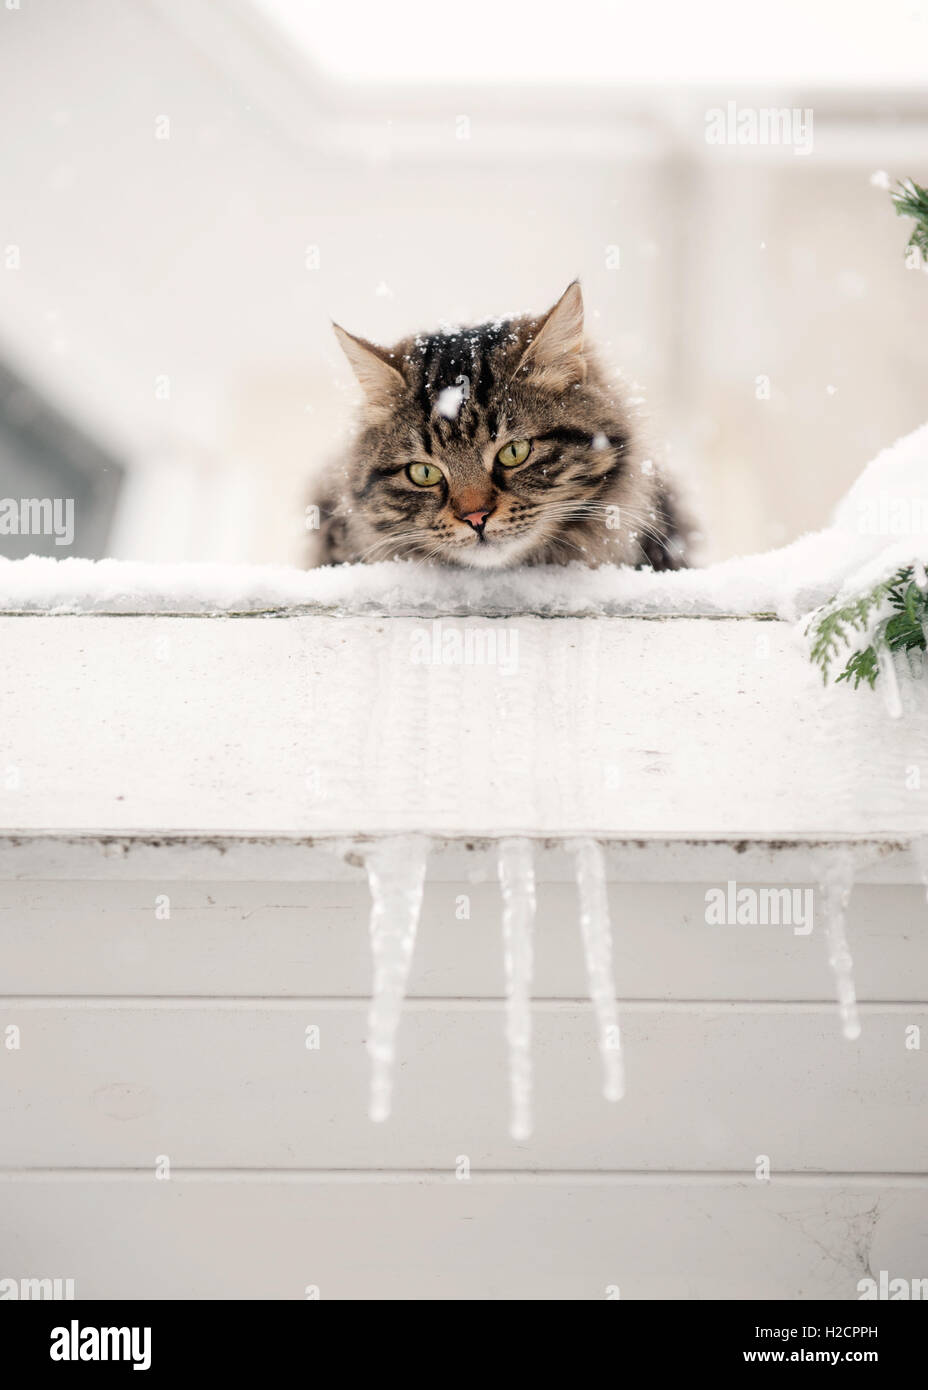 Fluffy tabby cat in snow,Istanbul - Stock Image